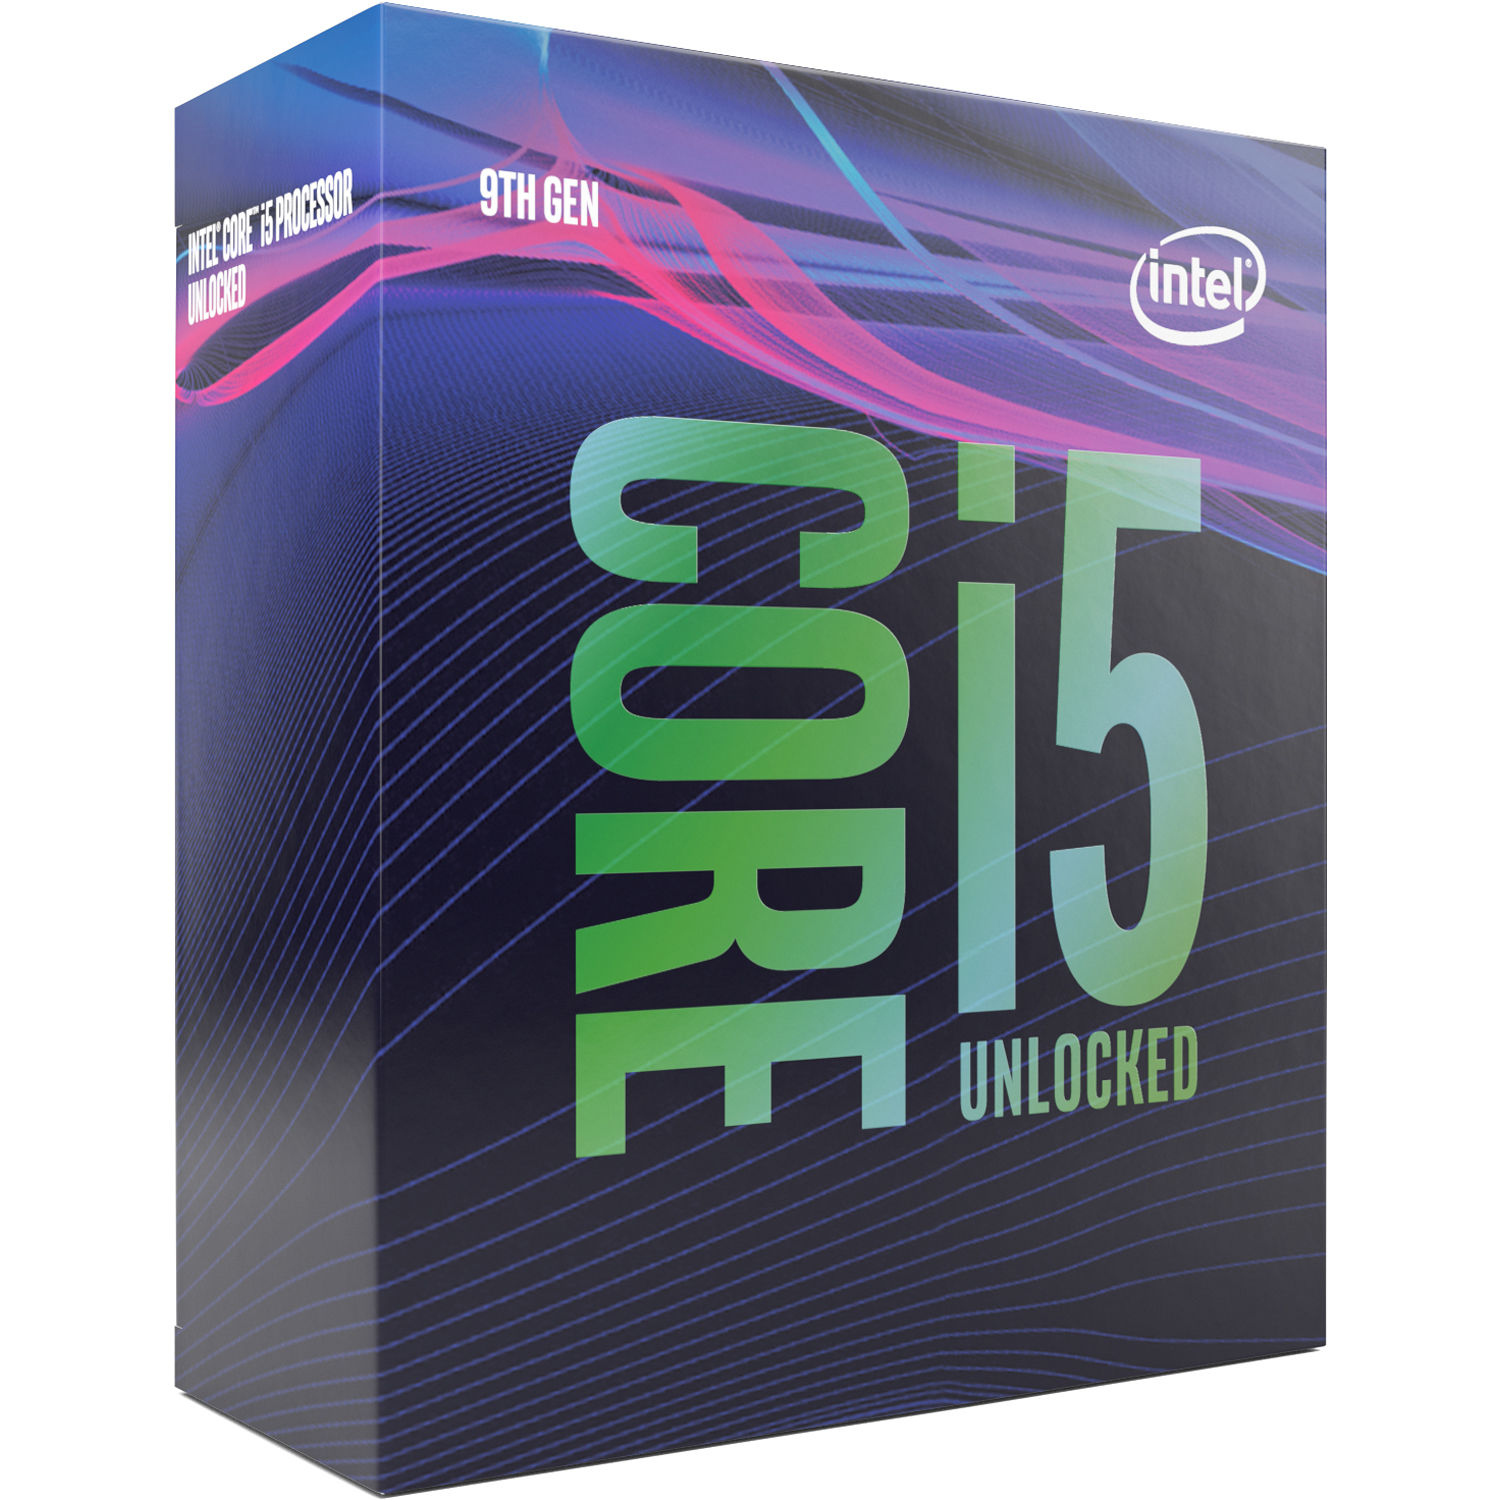 Intel cpu core i5 9600k 3.7chz 9mb lga 1151 _9600k